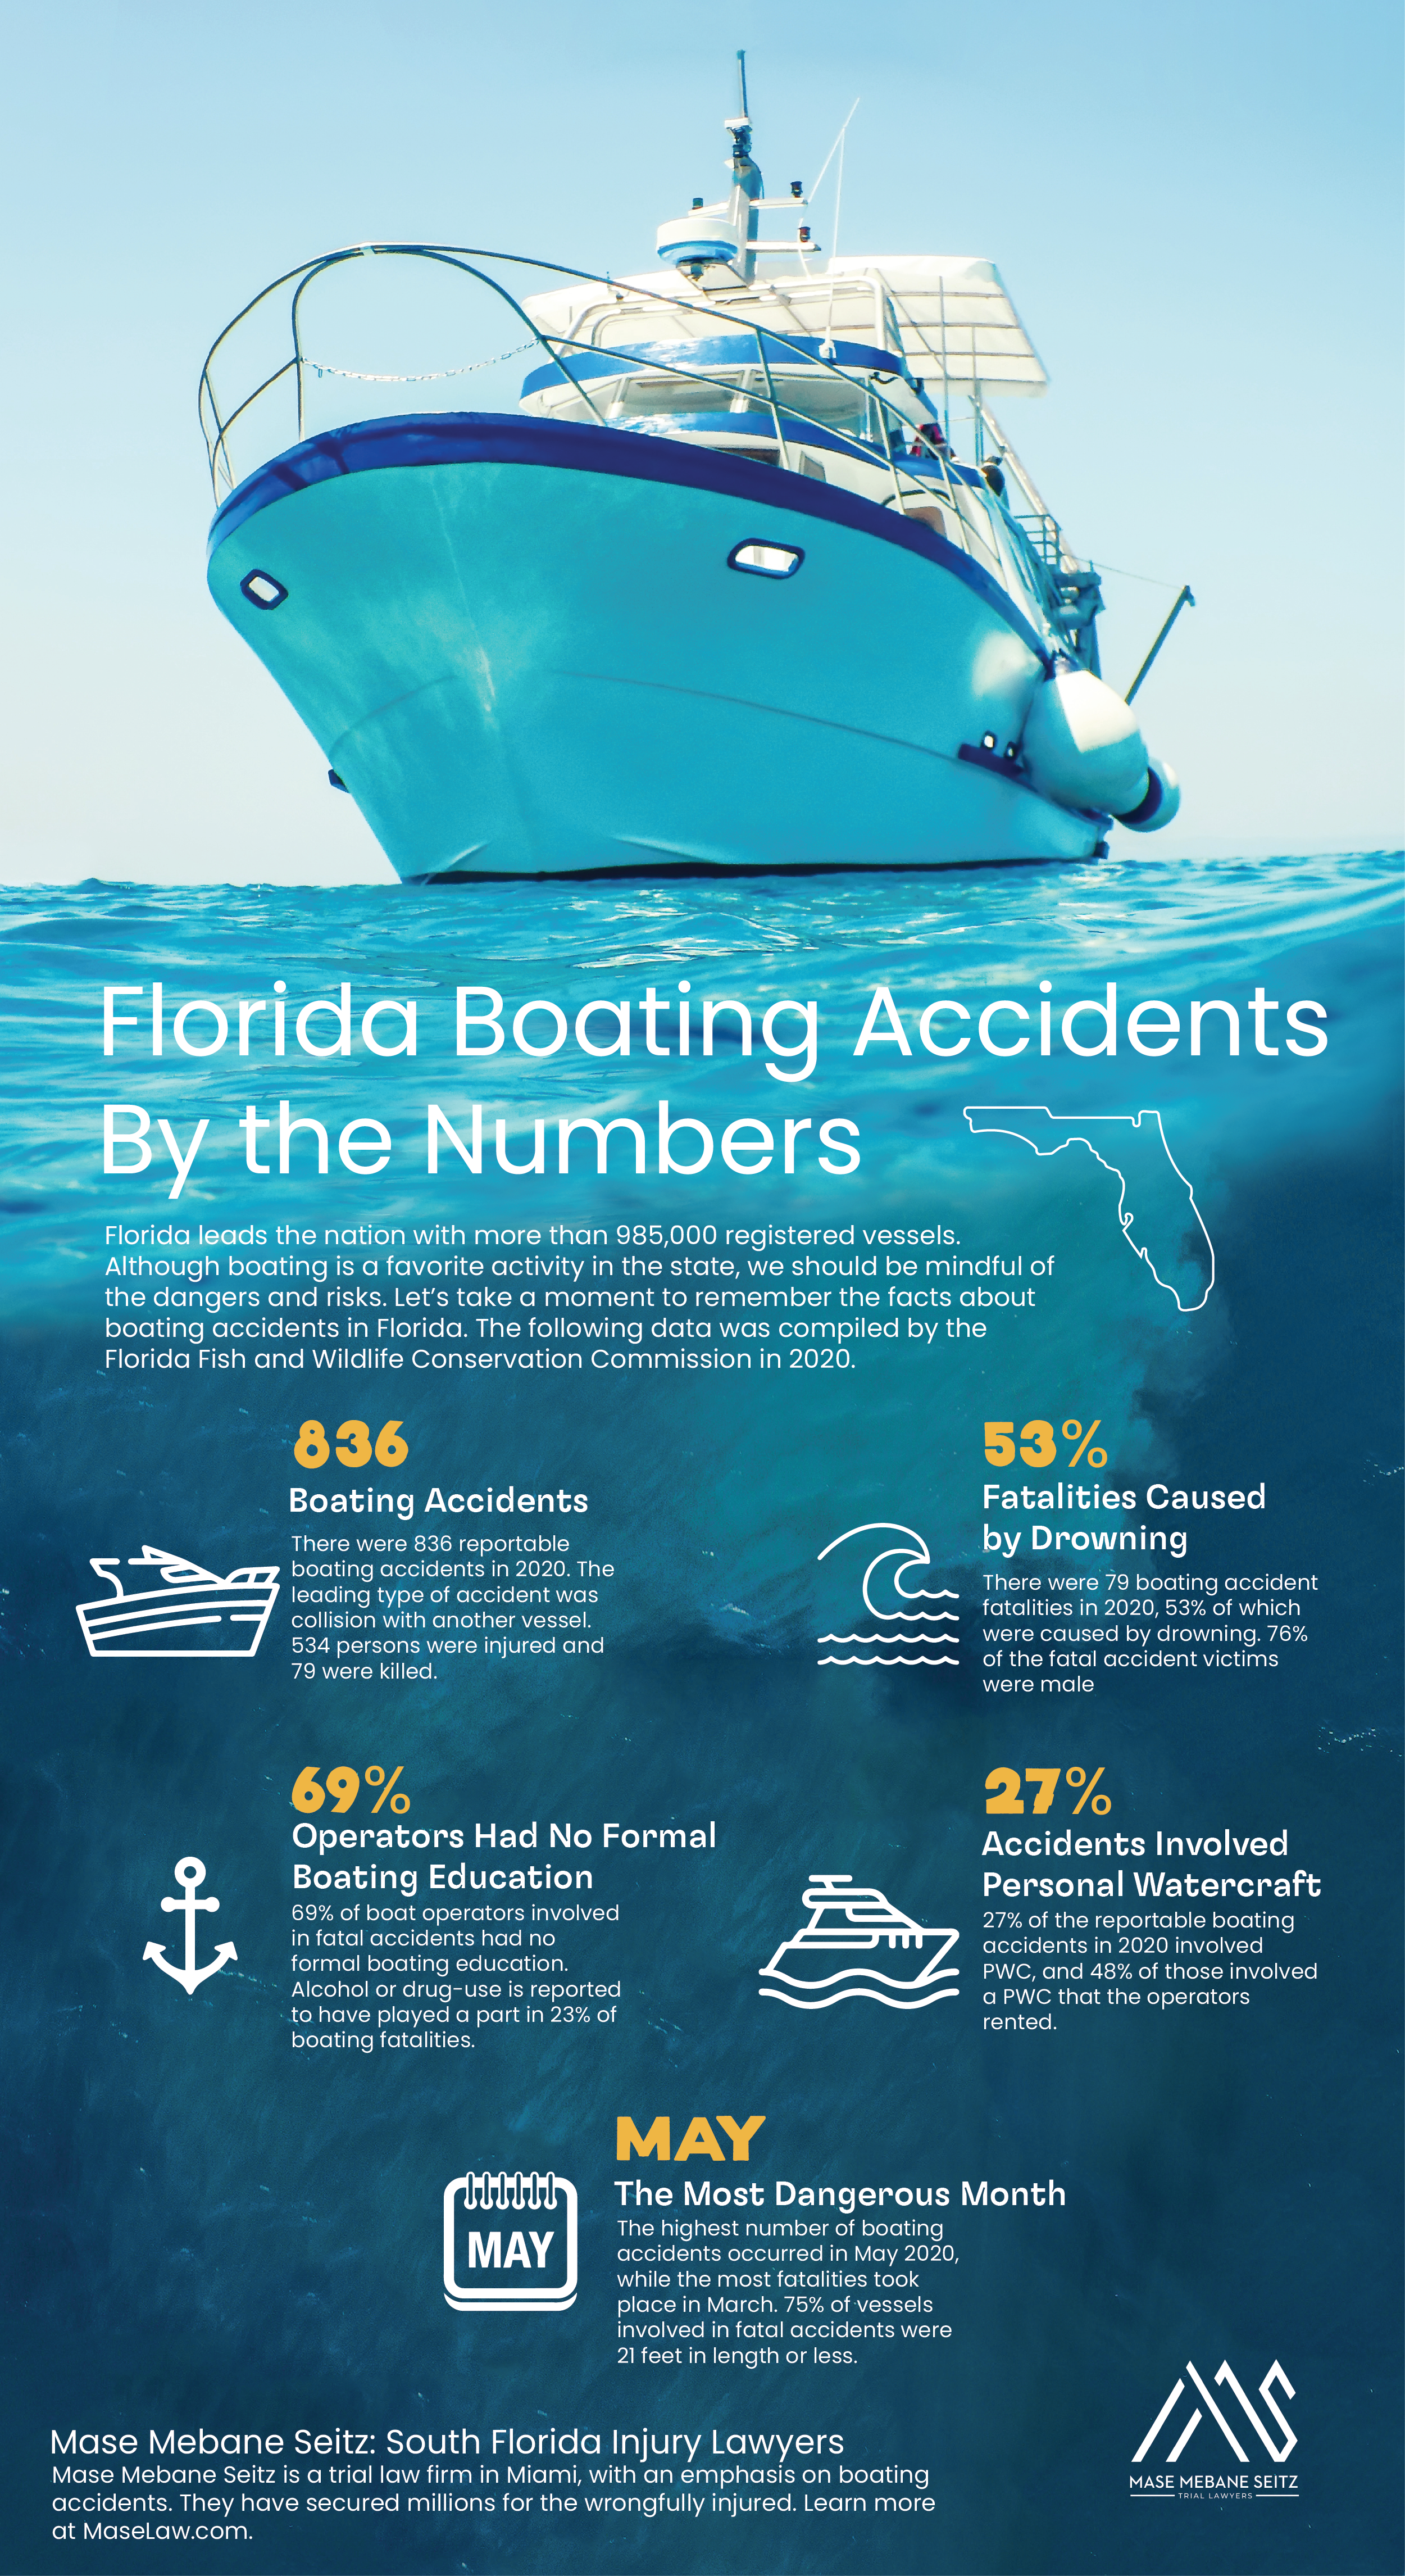 Florida Boating Accidents by the Numbers